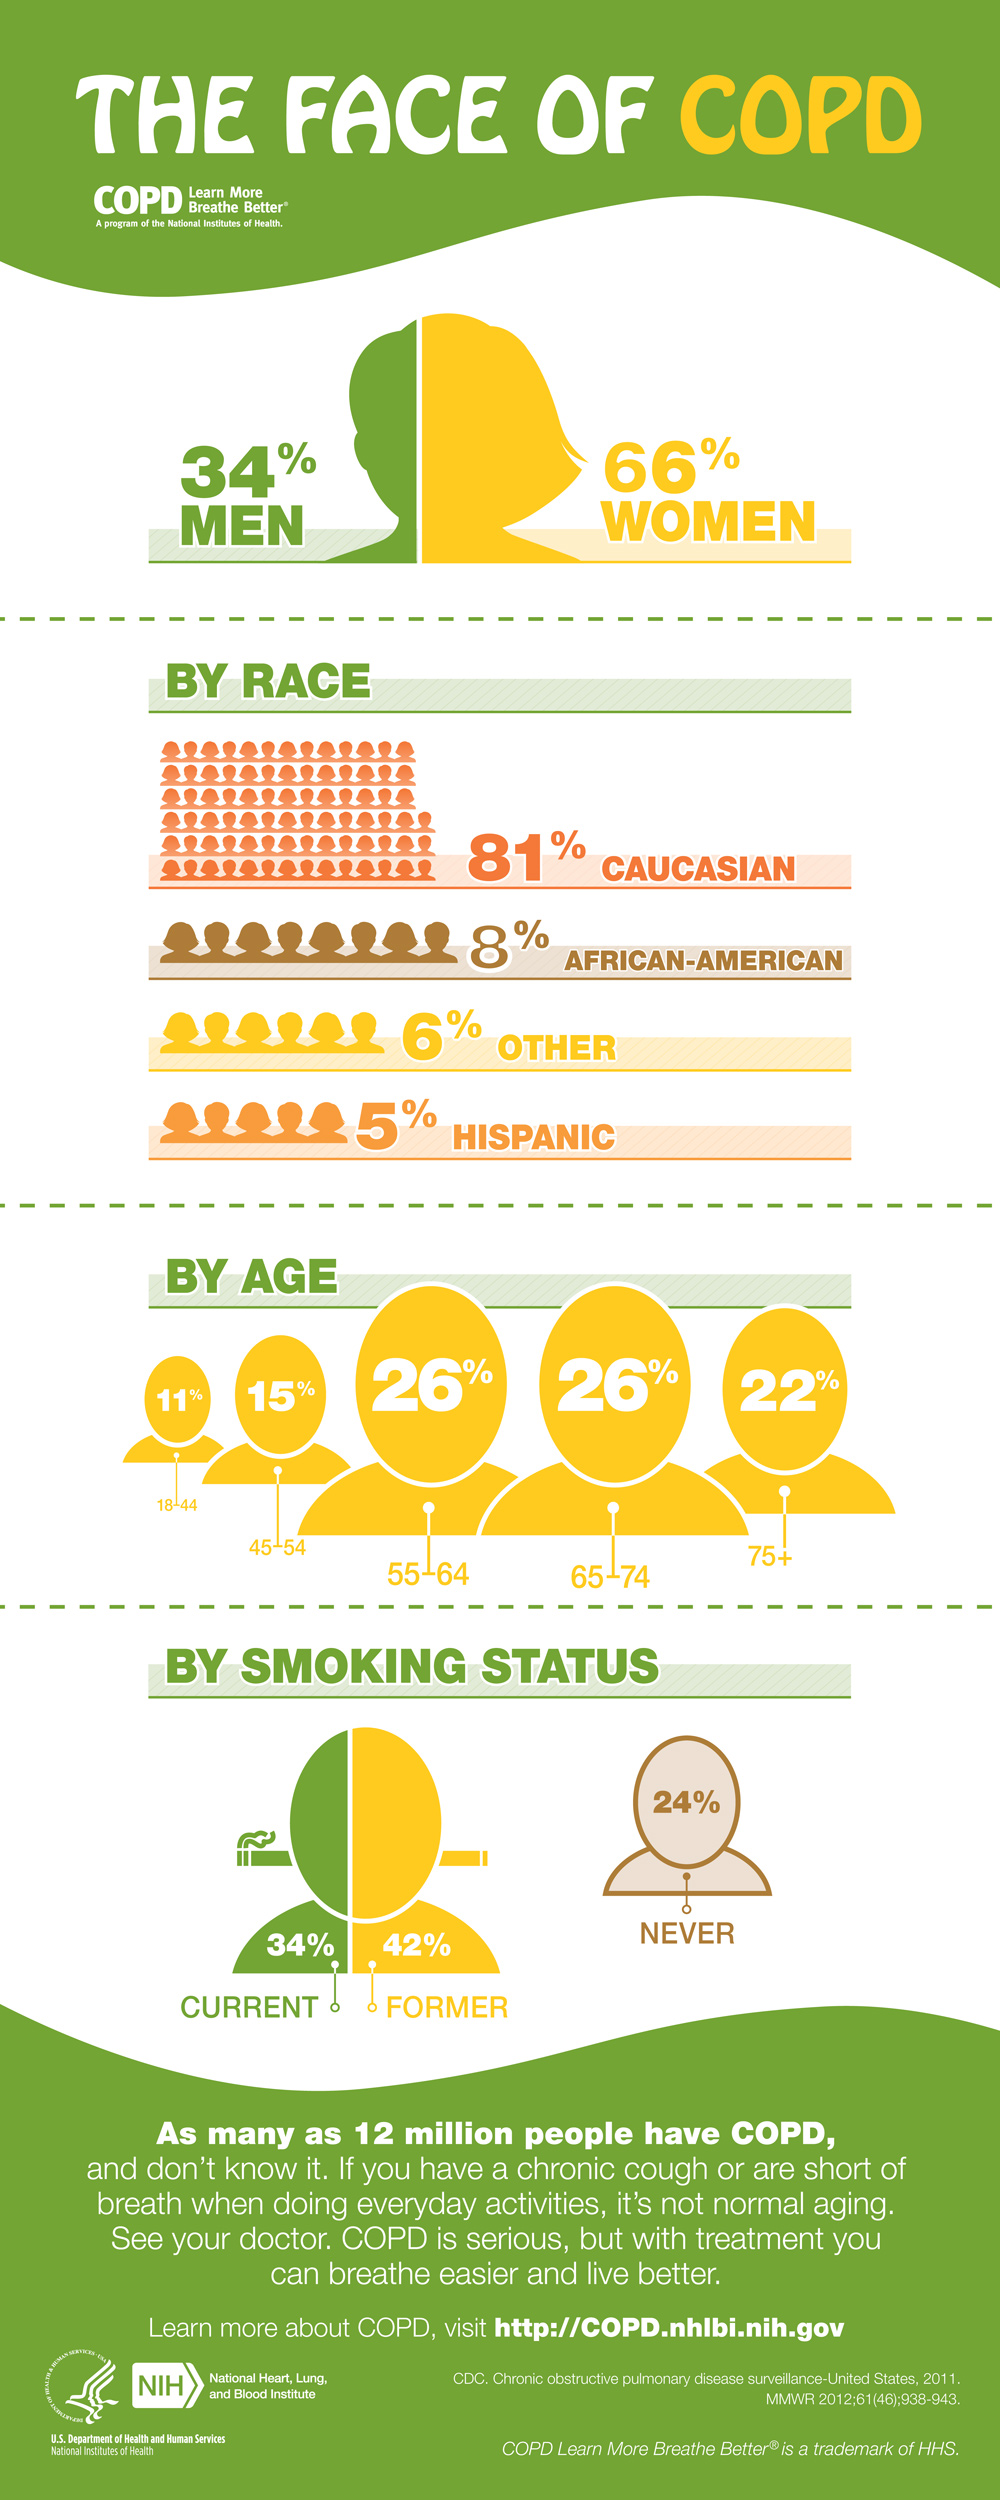 COPD_Face-Infographic_v11